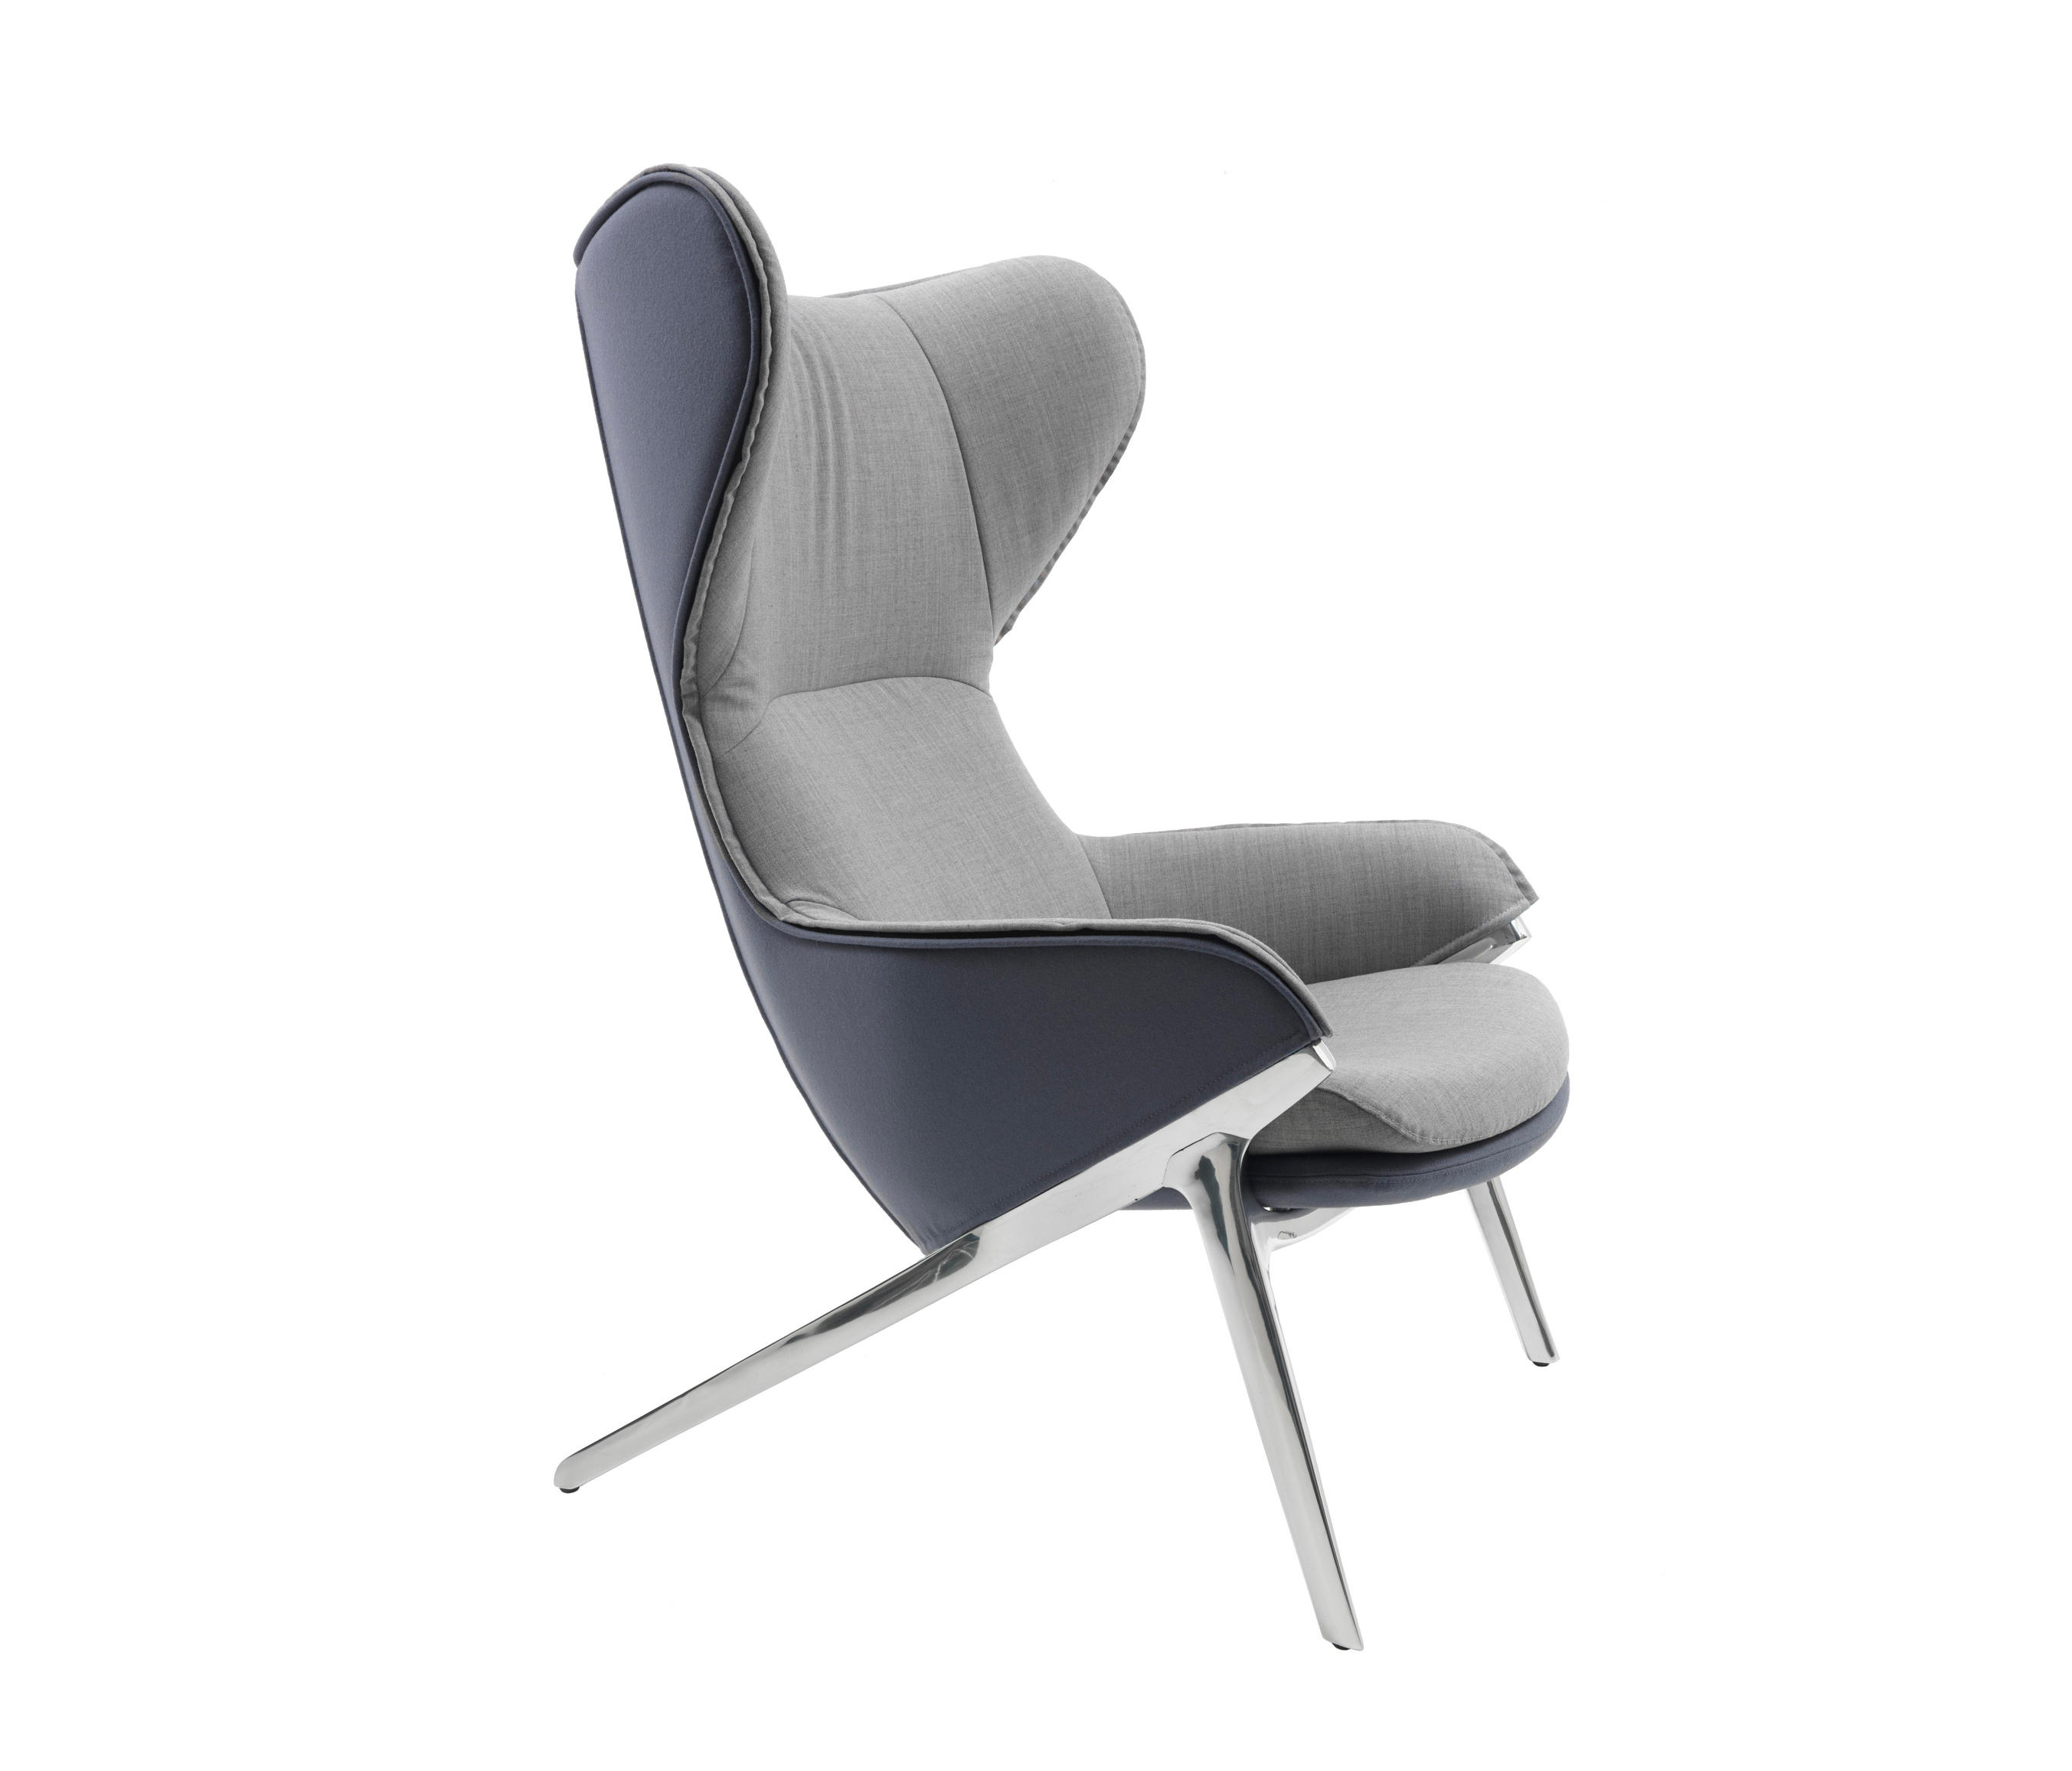 P22 Lounge chairs from Cassina